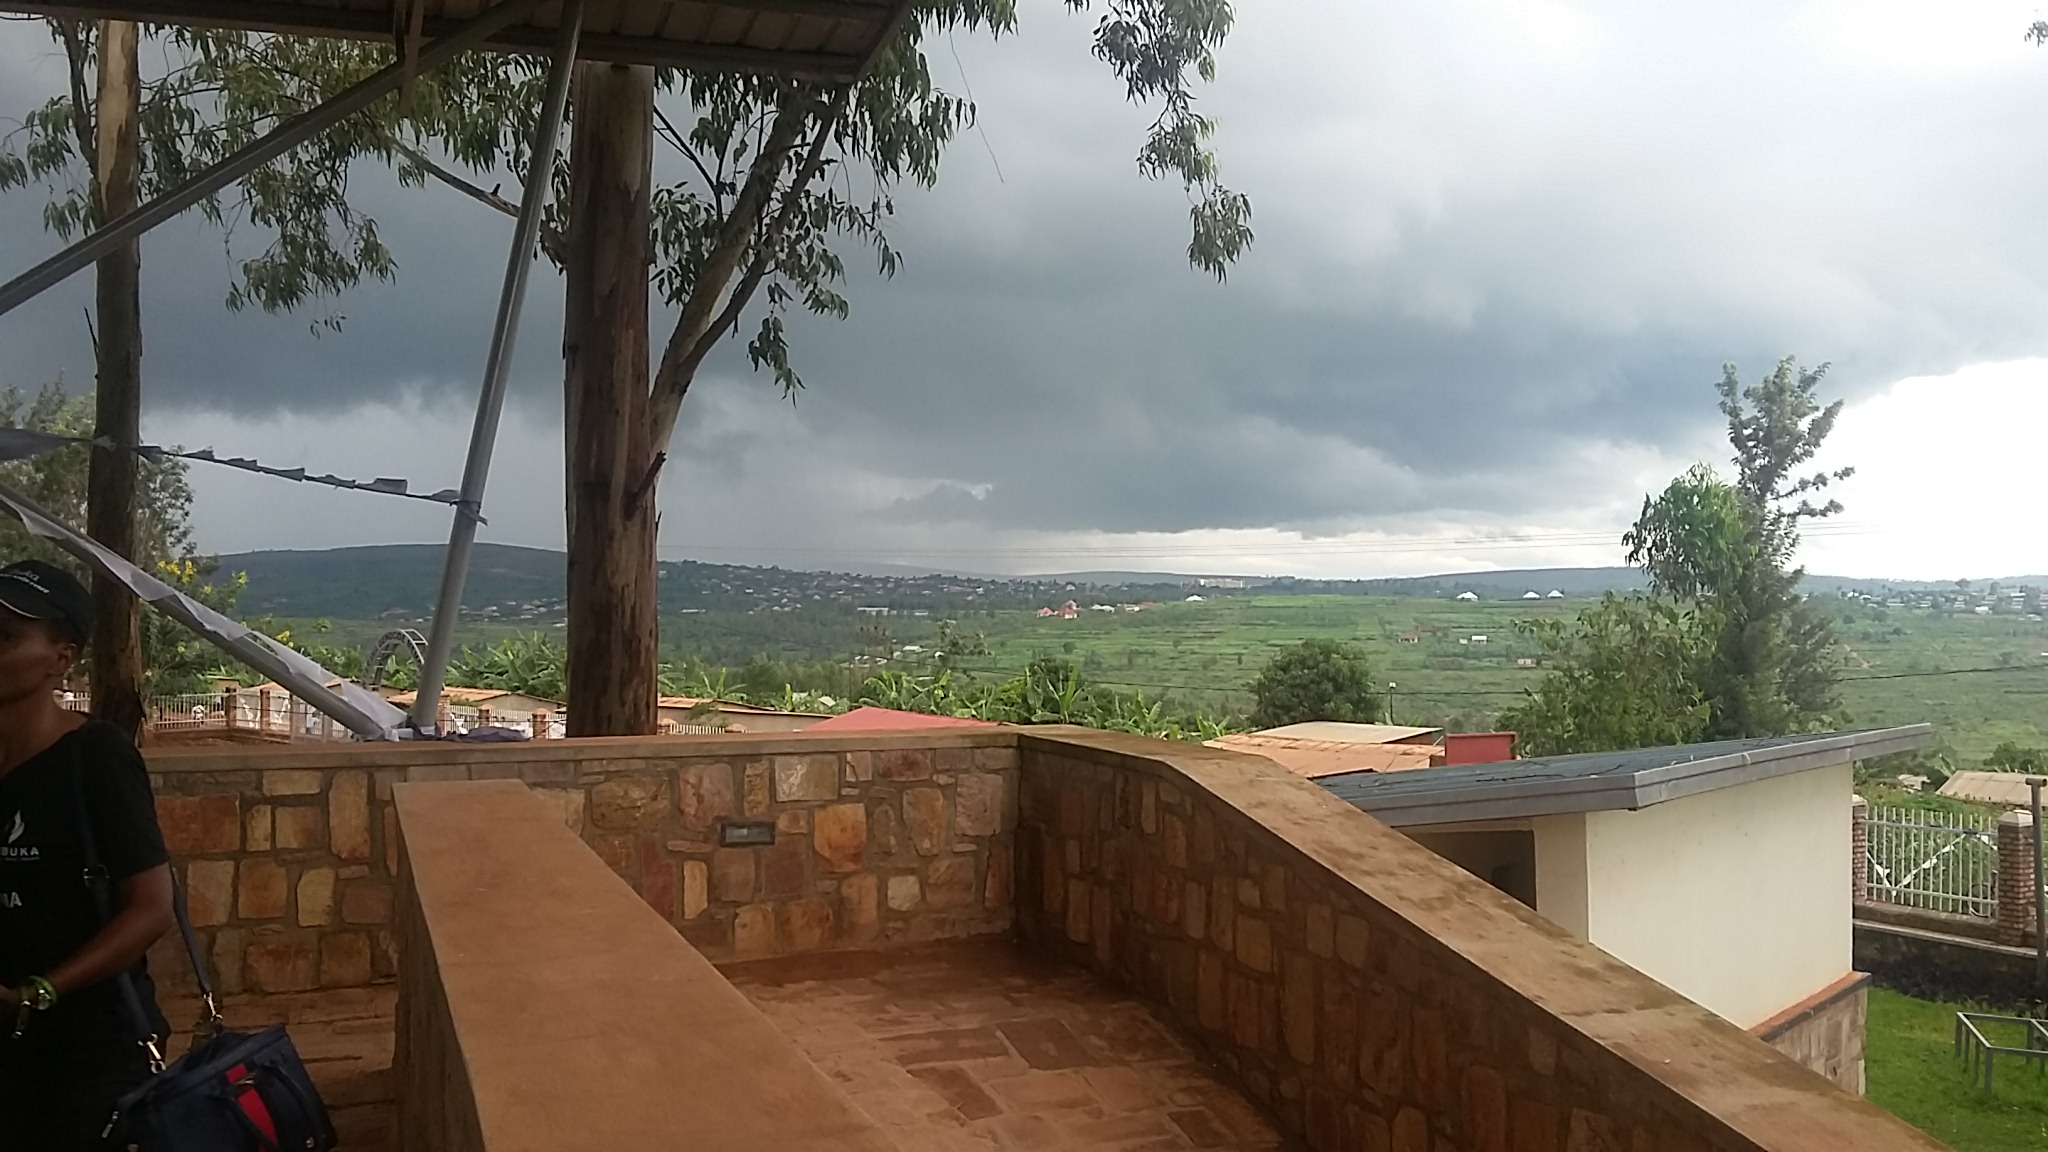 A view of rural Rwanda on a cloudy day at Ntarama